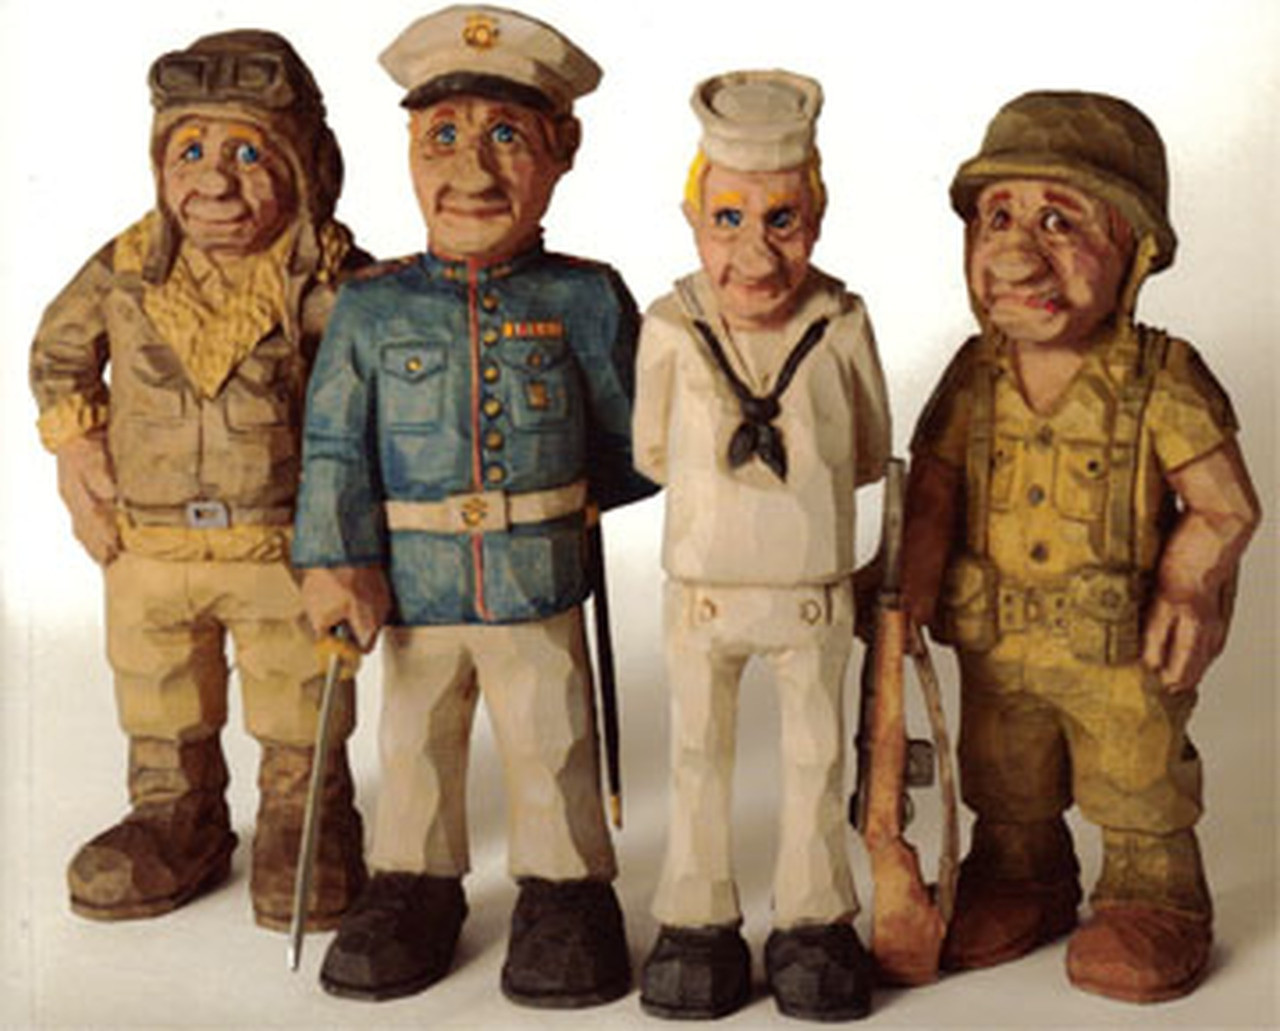 Soldiers carved by Floyd Rhadigan that are featured in his Carving Caricature Soldiers book.